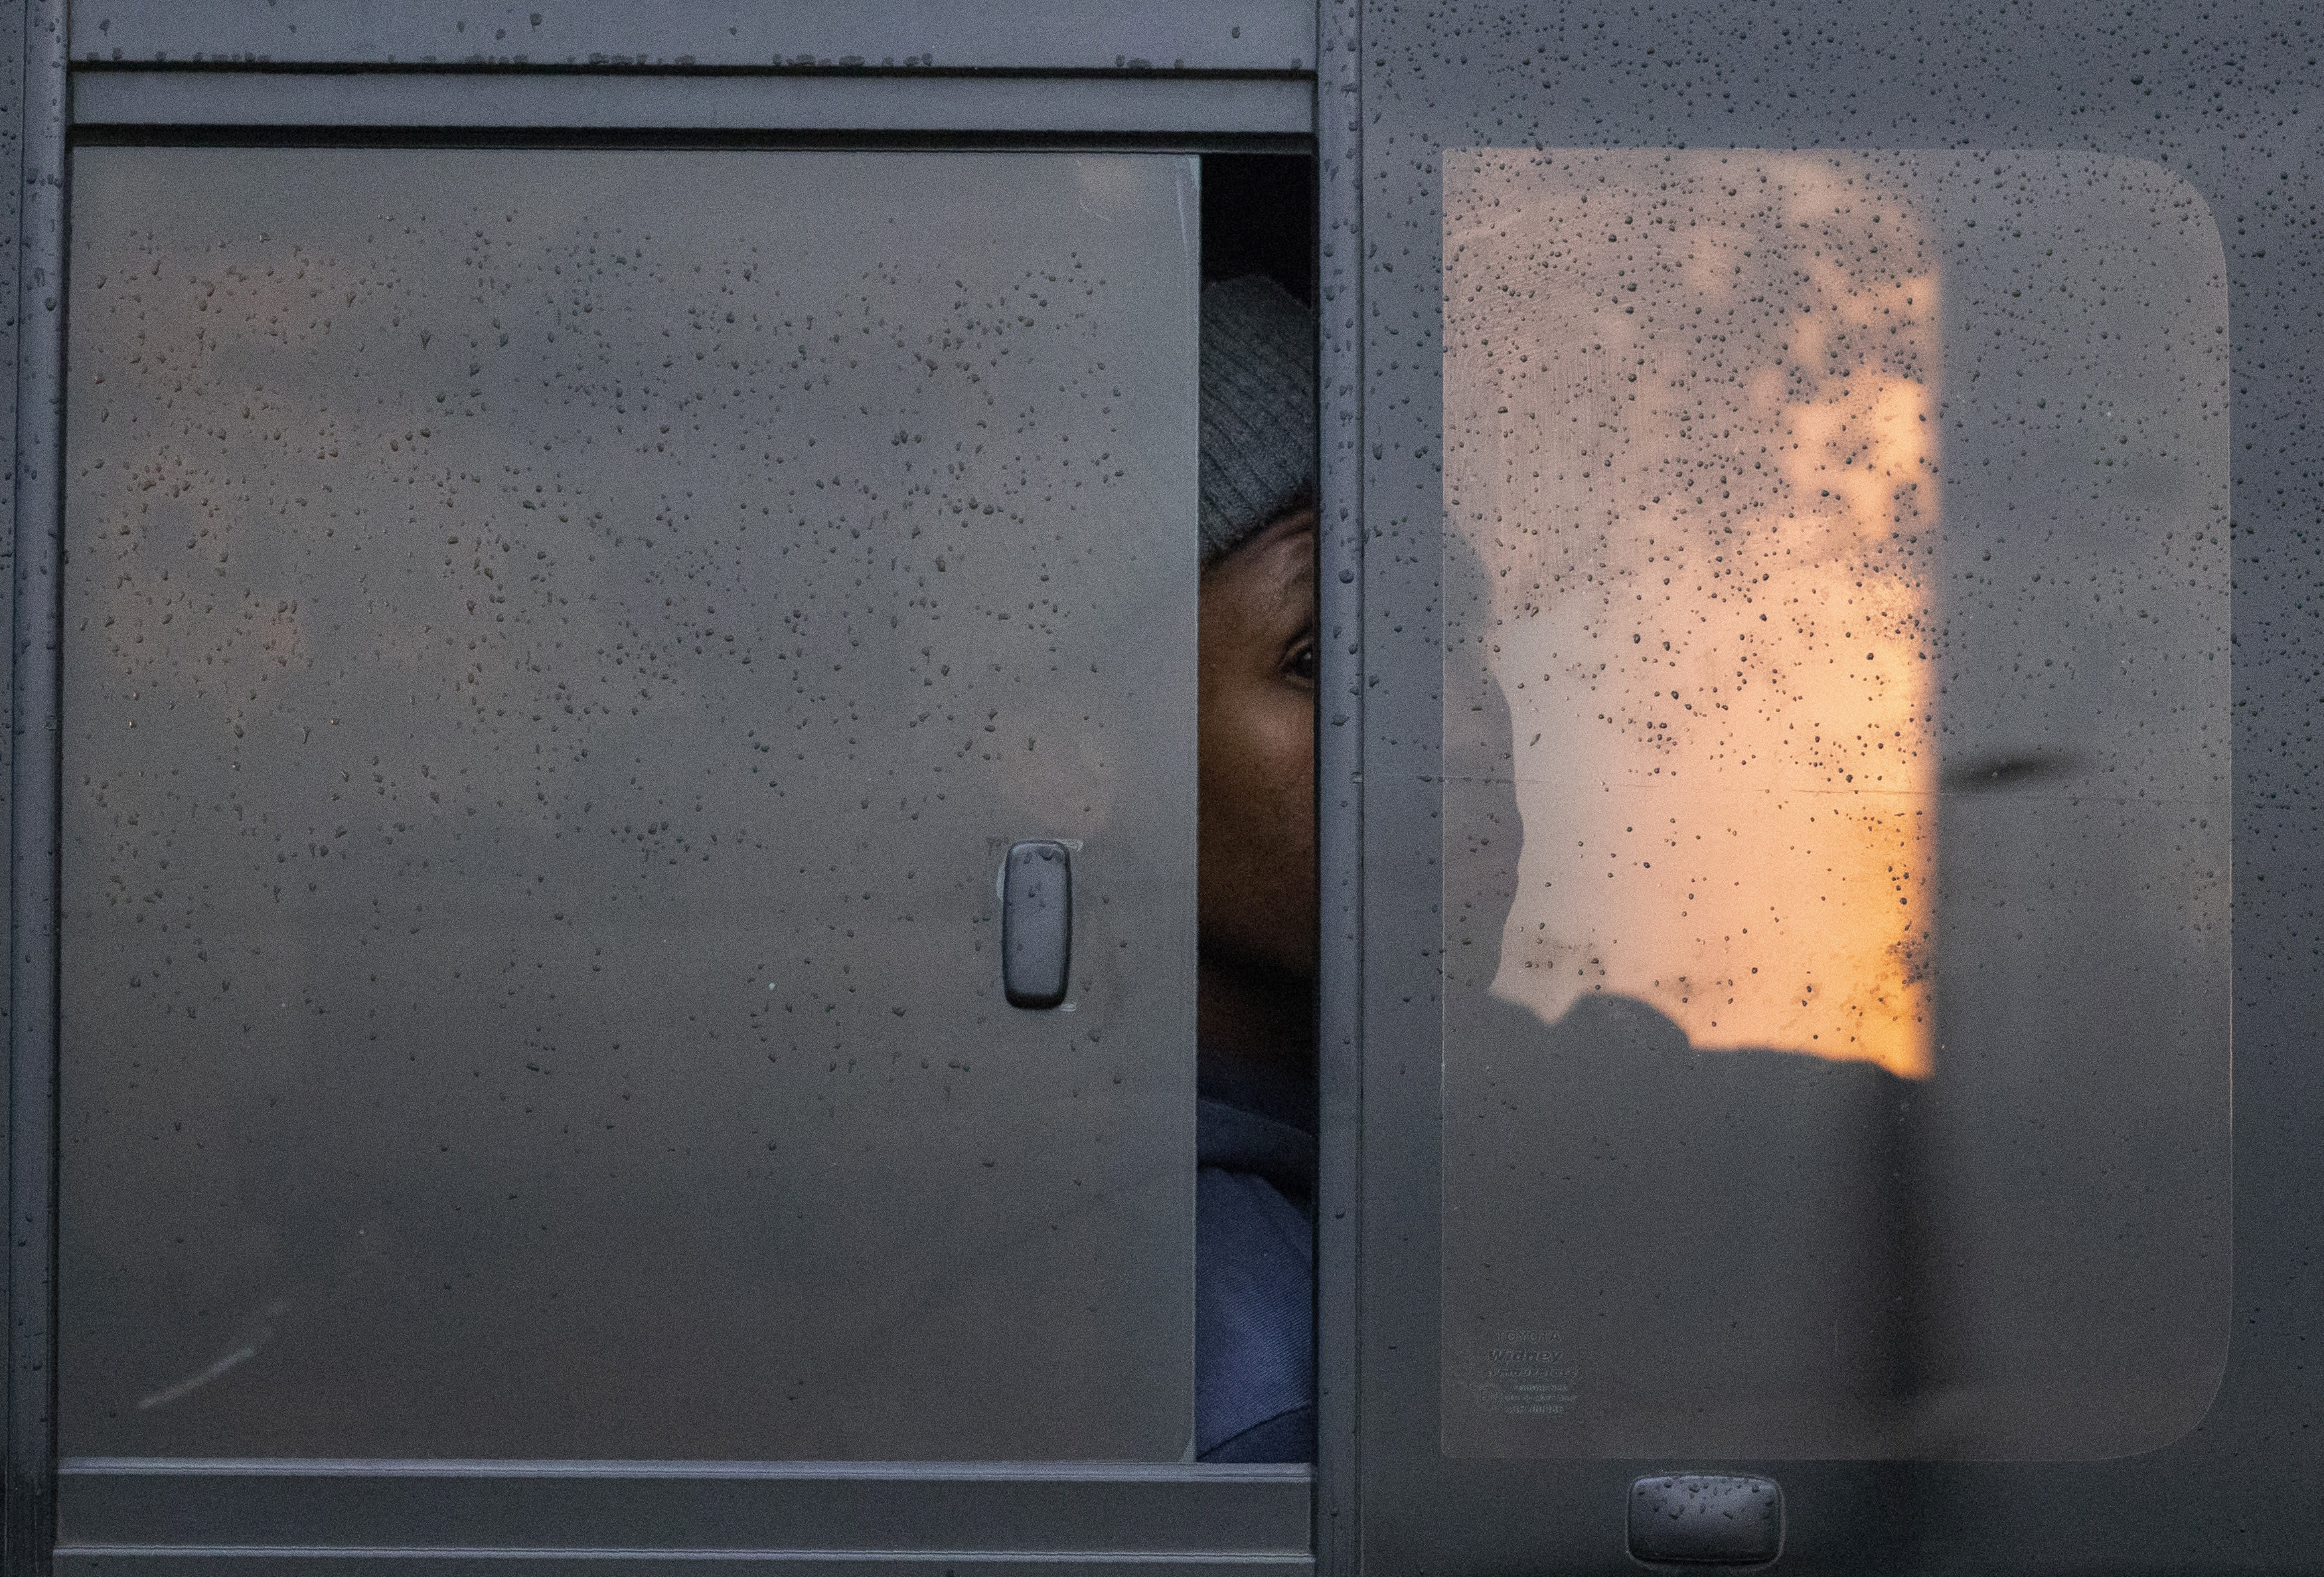 A passenger peeps through a window whilst sitting inside a minibus taxi during their journey to home in Kwa-Thema east of Johannesburg, South Africa, Tuesday, March 17, 2020. President Cyril Ramaphosa said all schools will be closed for 30 days from Wednesday and he banned all public gatherings of more than 100 people. South Africa will close 35 of its 53 land borders and will intensify screening at its international airports. For most people, the new COVID-19 coronavirus causes only mild or moderate symptoms. For some it can cause more severe illness. (AP Photo/Themba Hadebe)